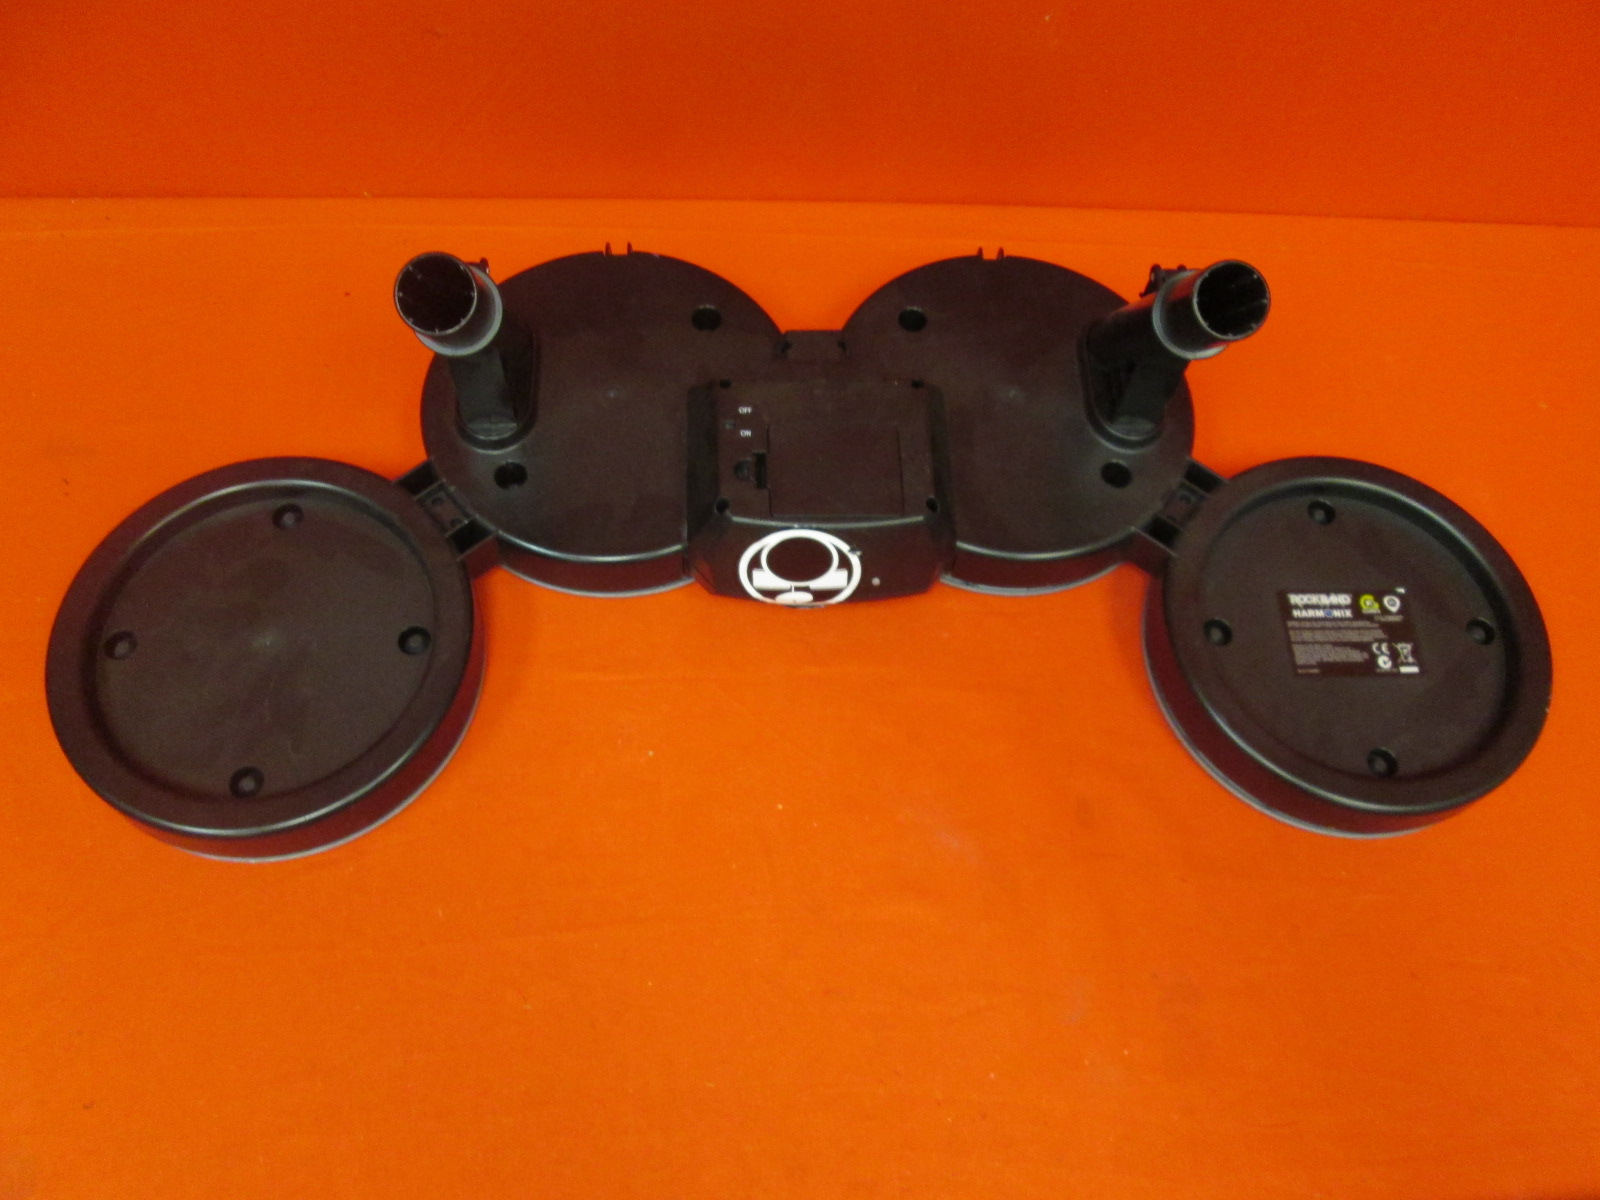 Image 1 of Rock Band Harmonix Wired Drum Kit Set Stand For PlayStation 3